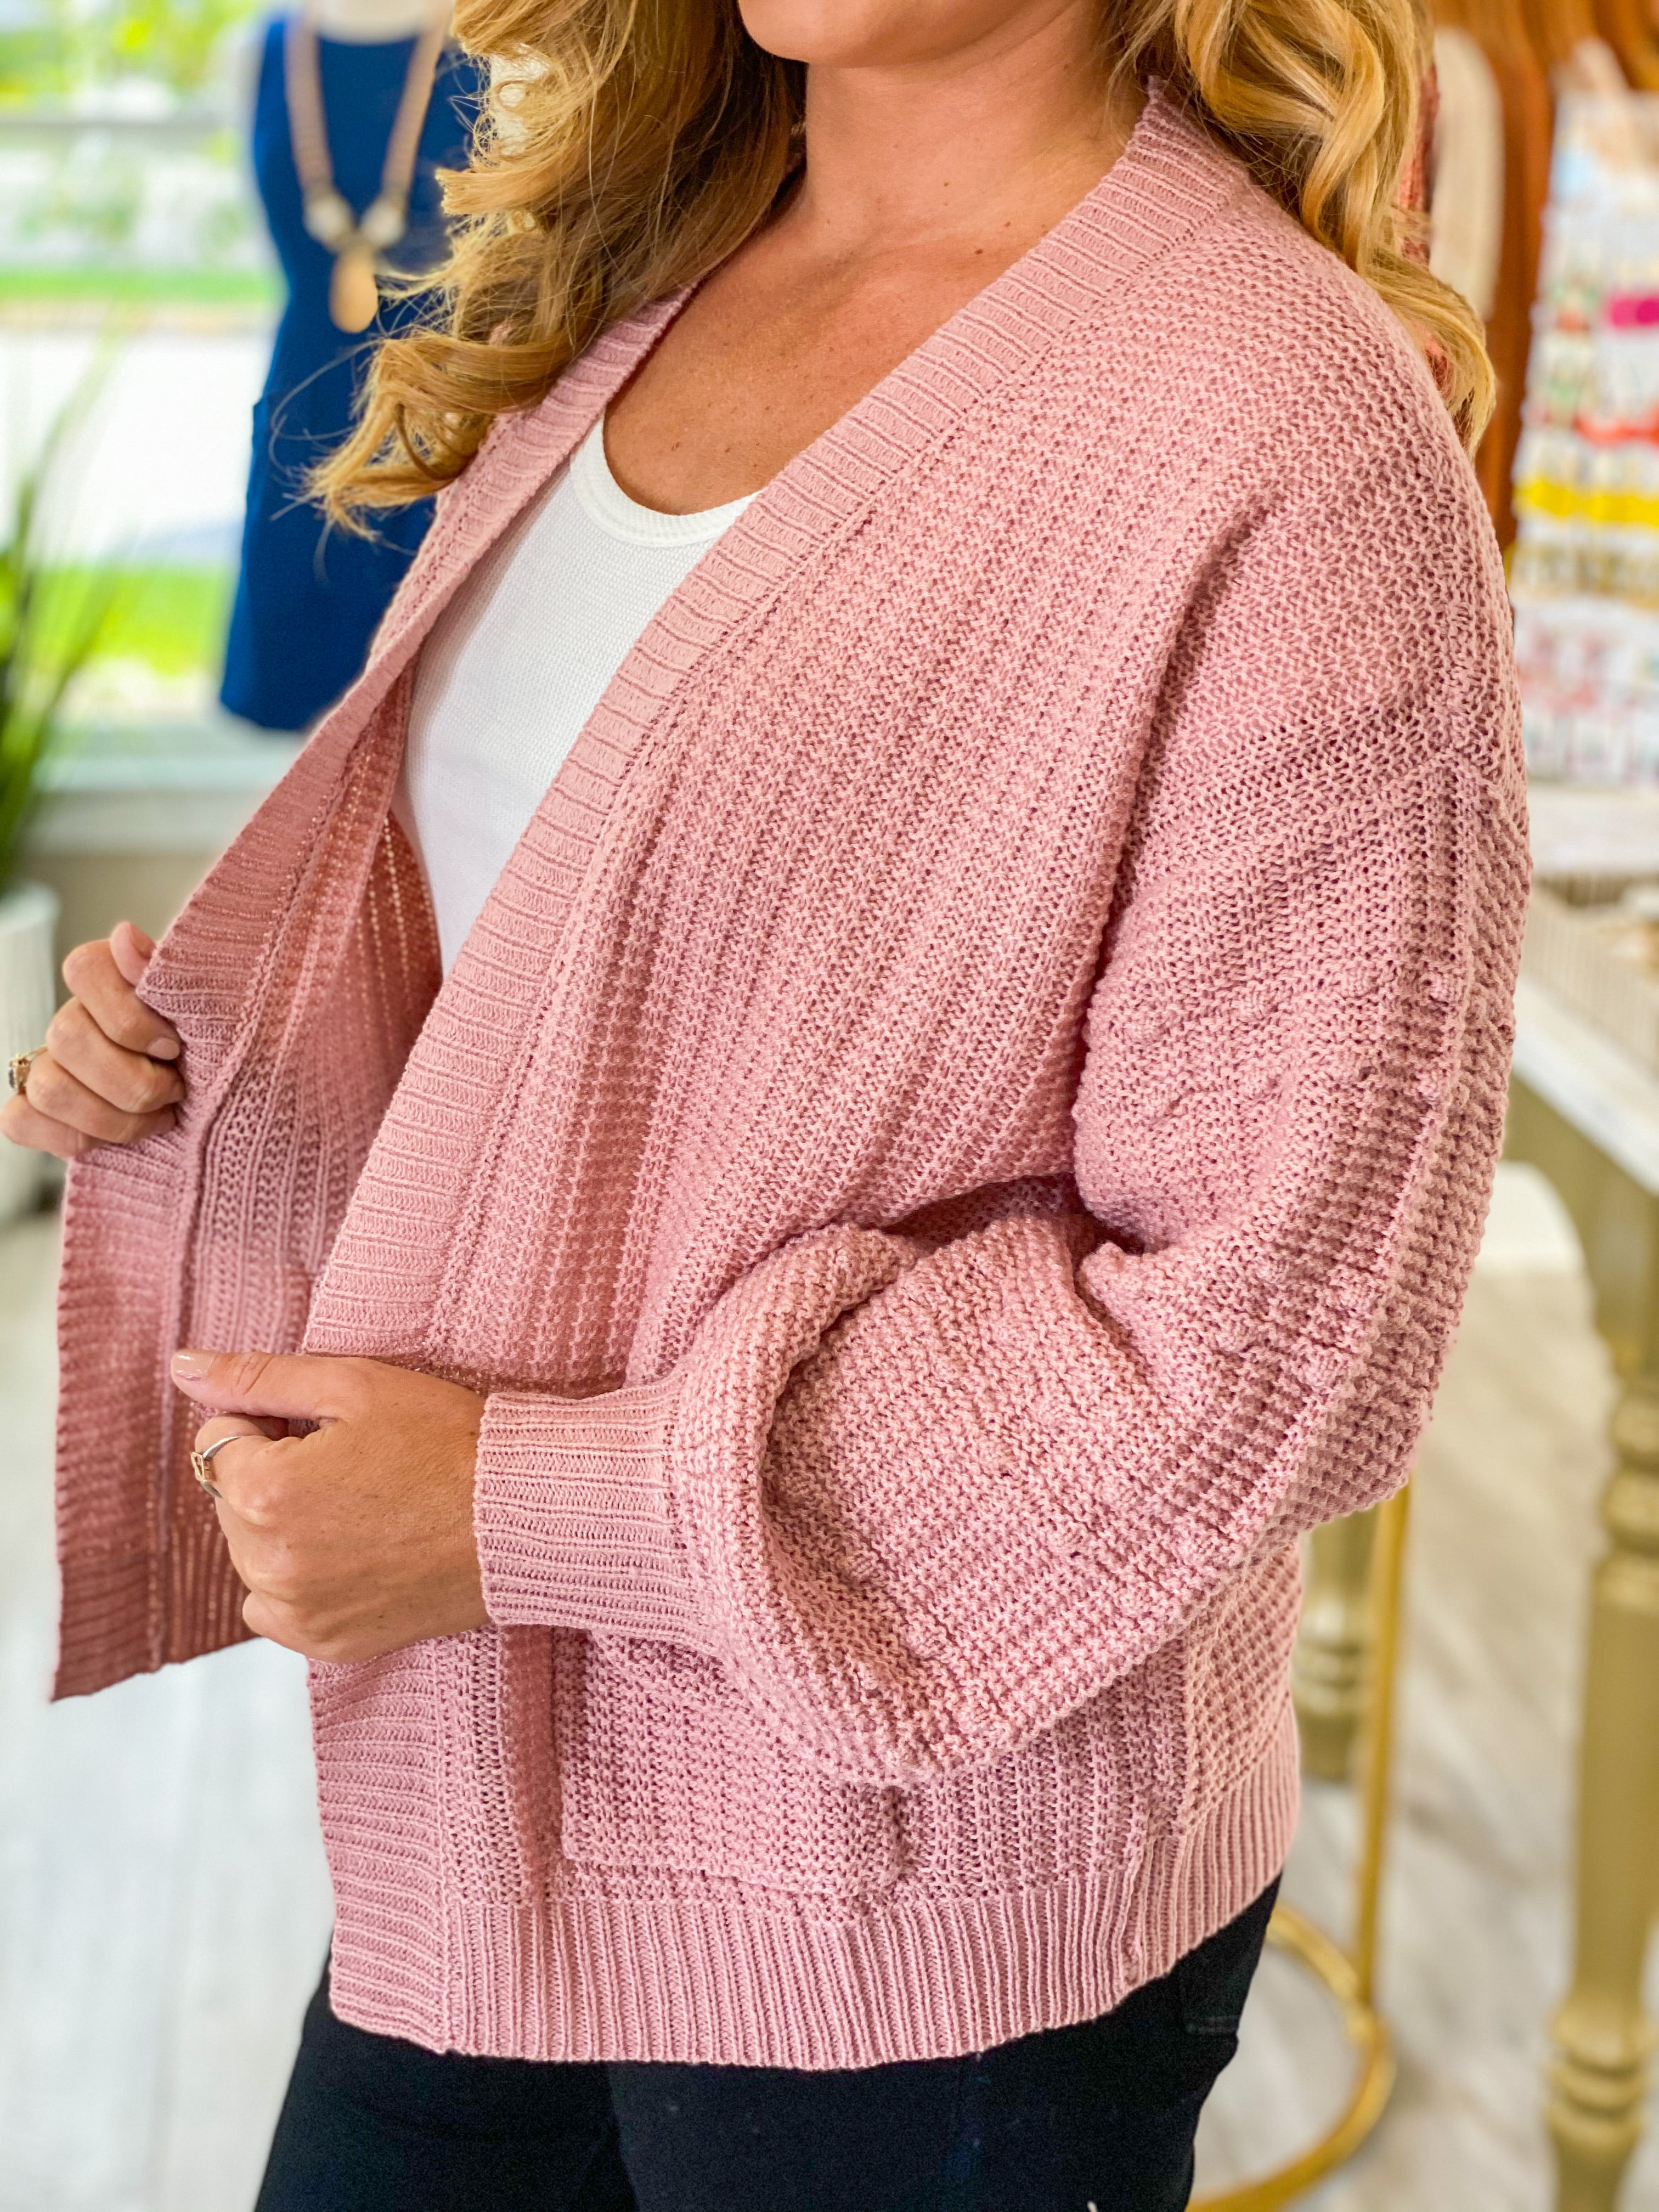 Popcorn Sleeve Knit Cardigan